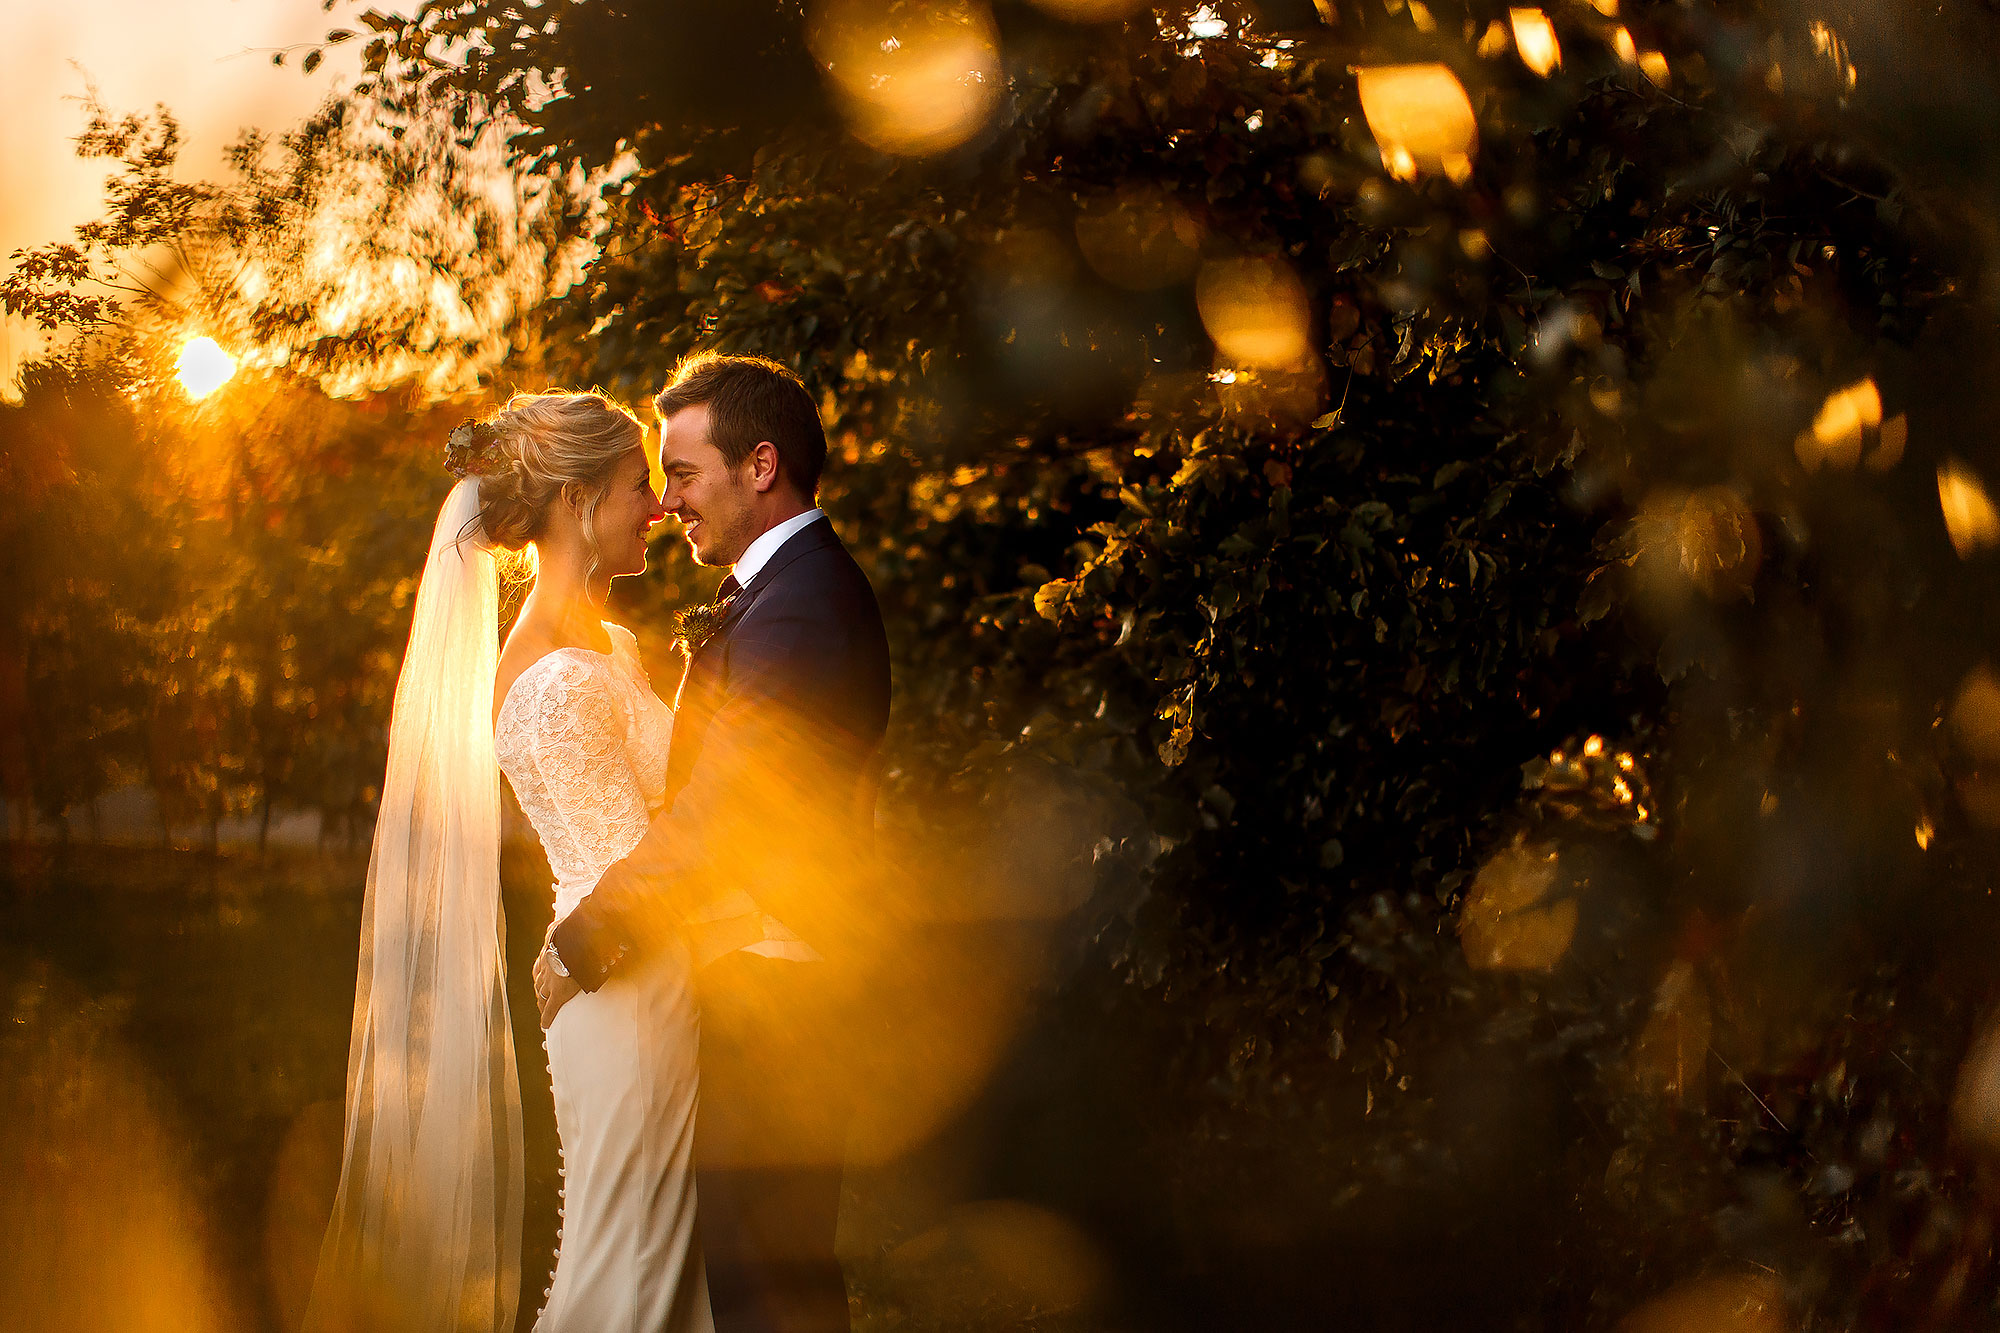 Bride and Groom in the gardens during golden hour sunset photoshoot with bokeh - The Out Barn at Clough Bottom Wedding Photography